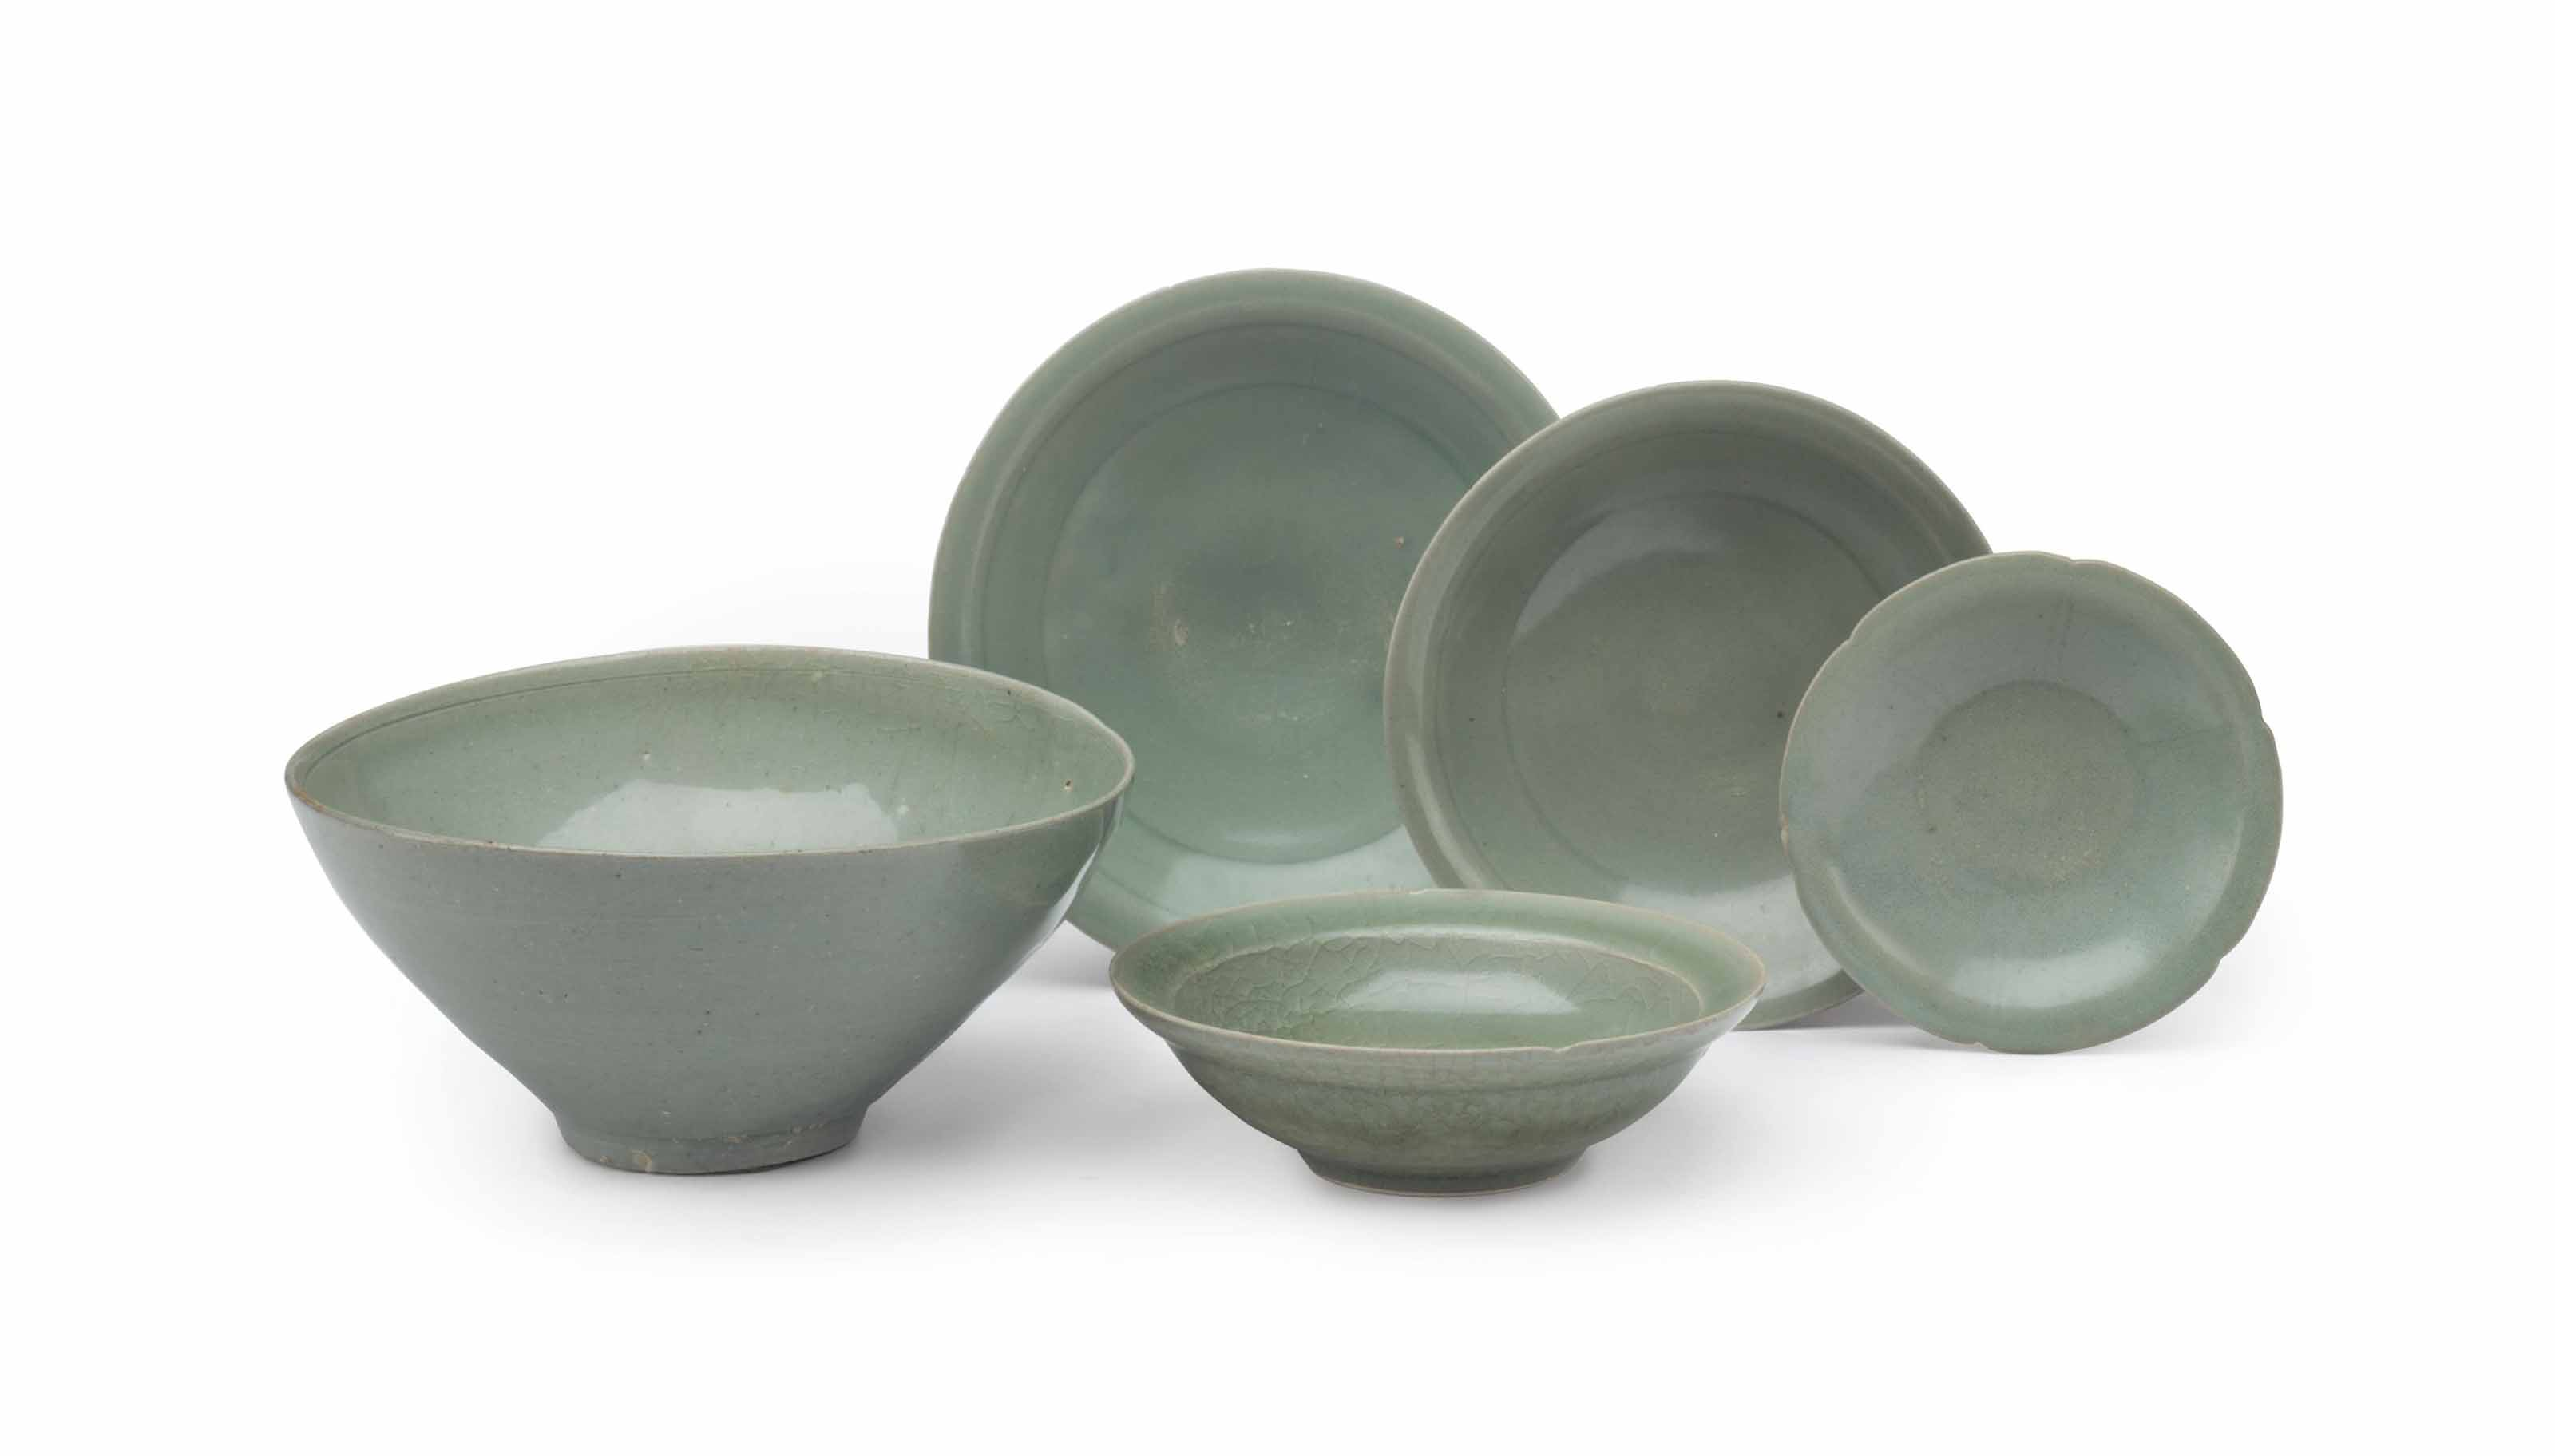 FIVE CHINESE CELADON-GLAZED DI